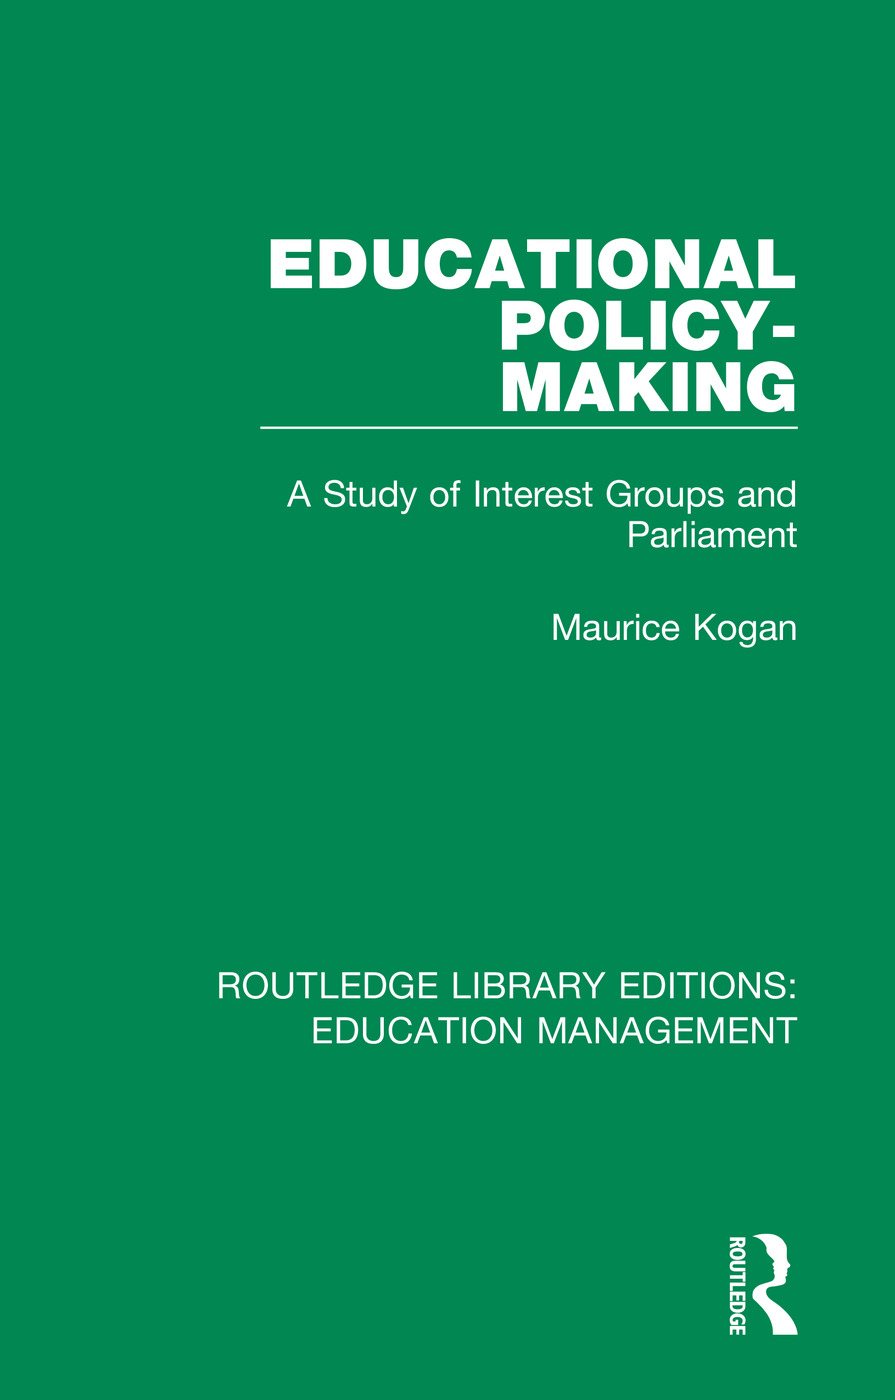 Educational Policy-making